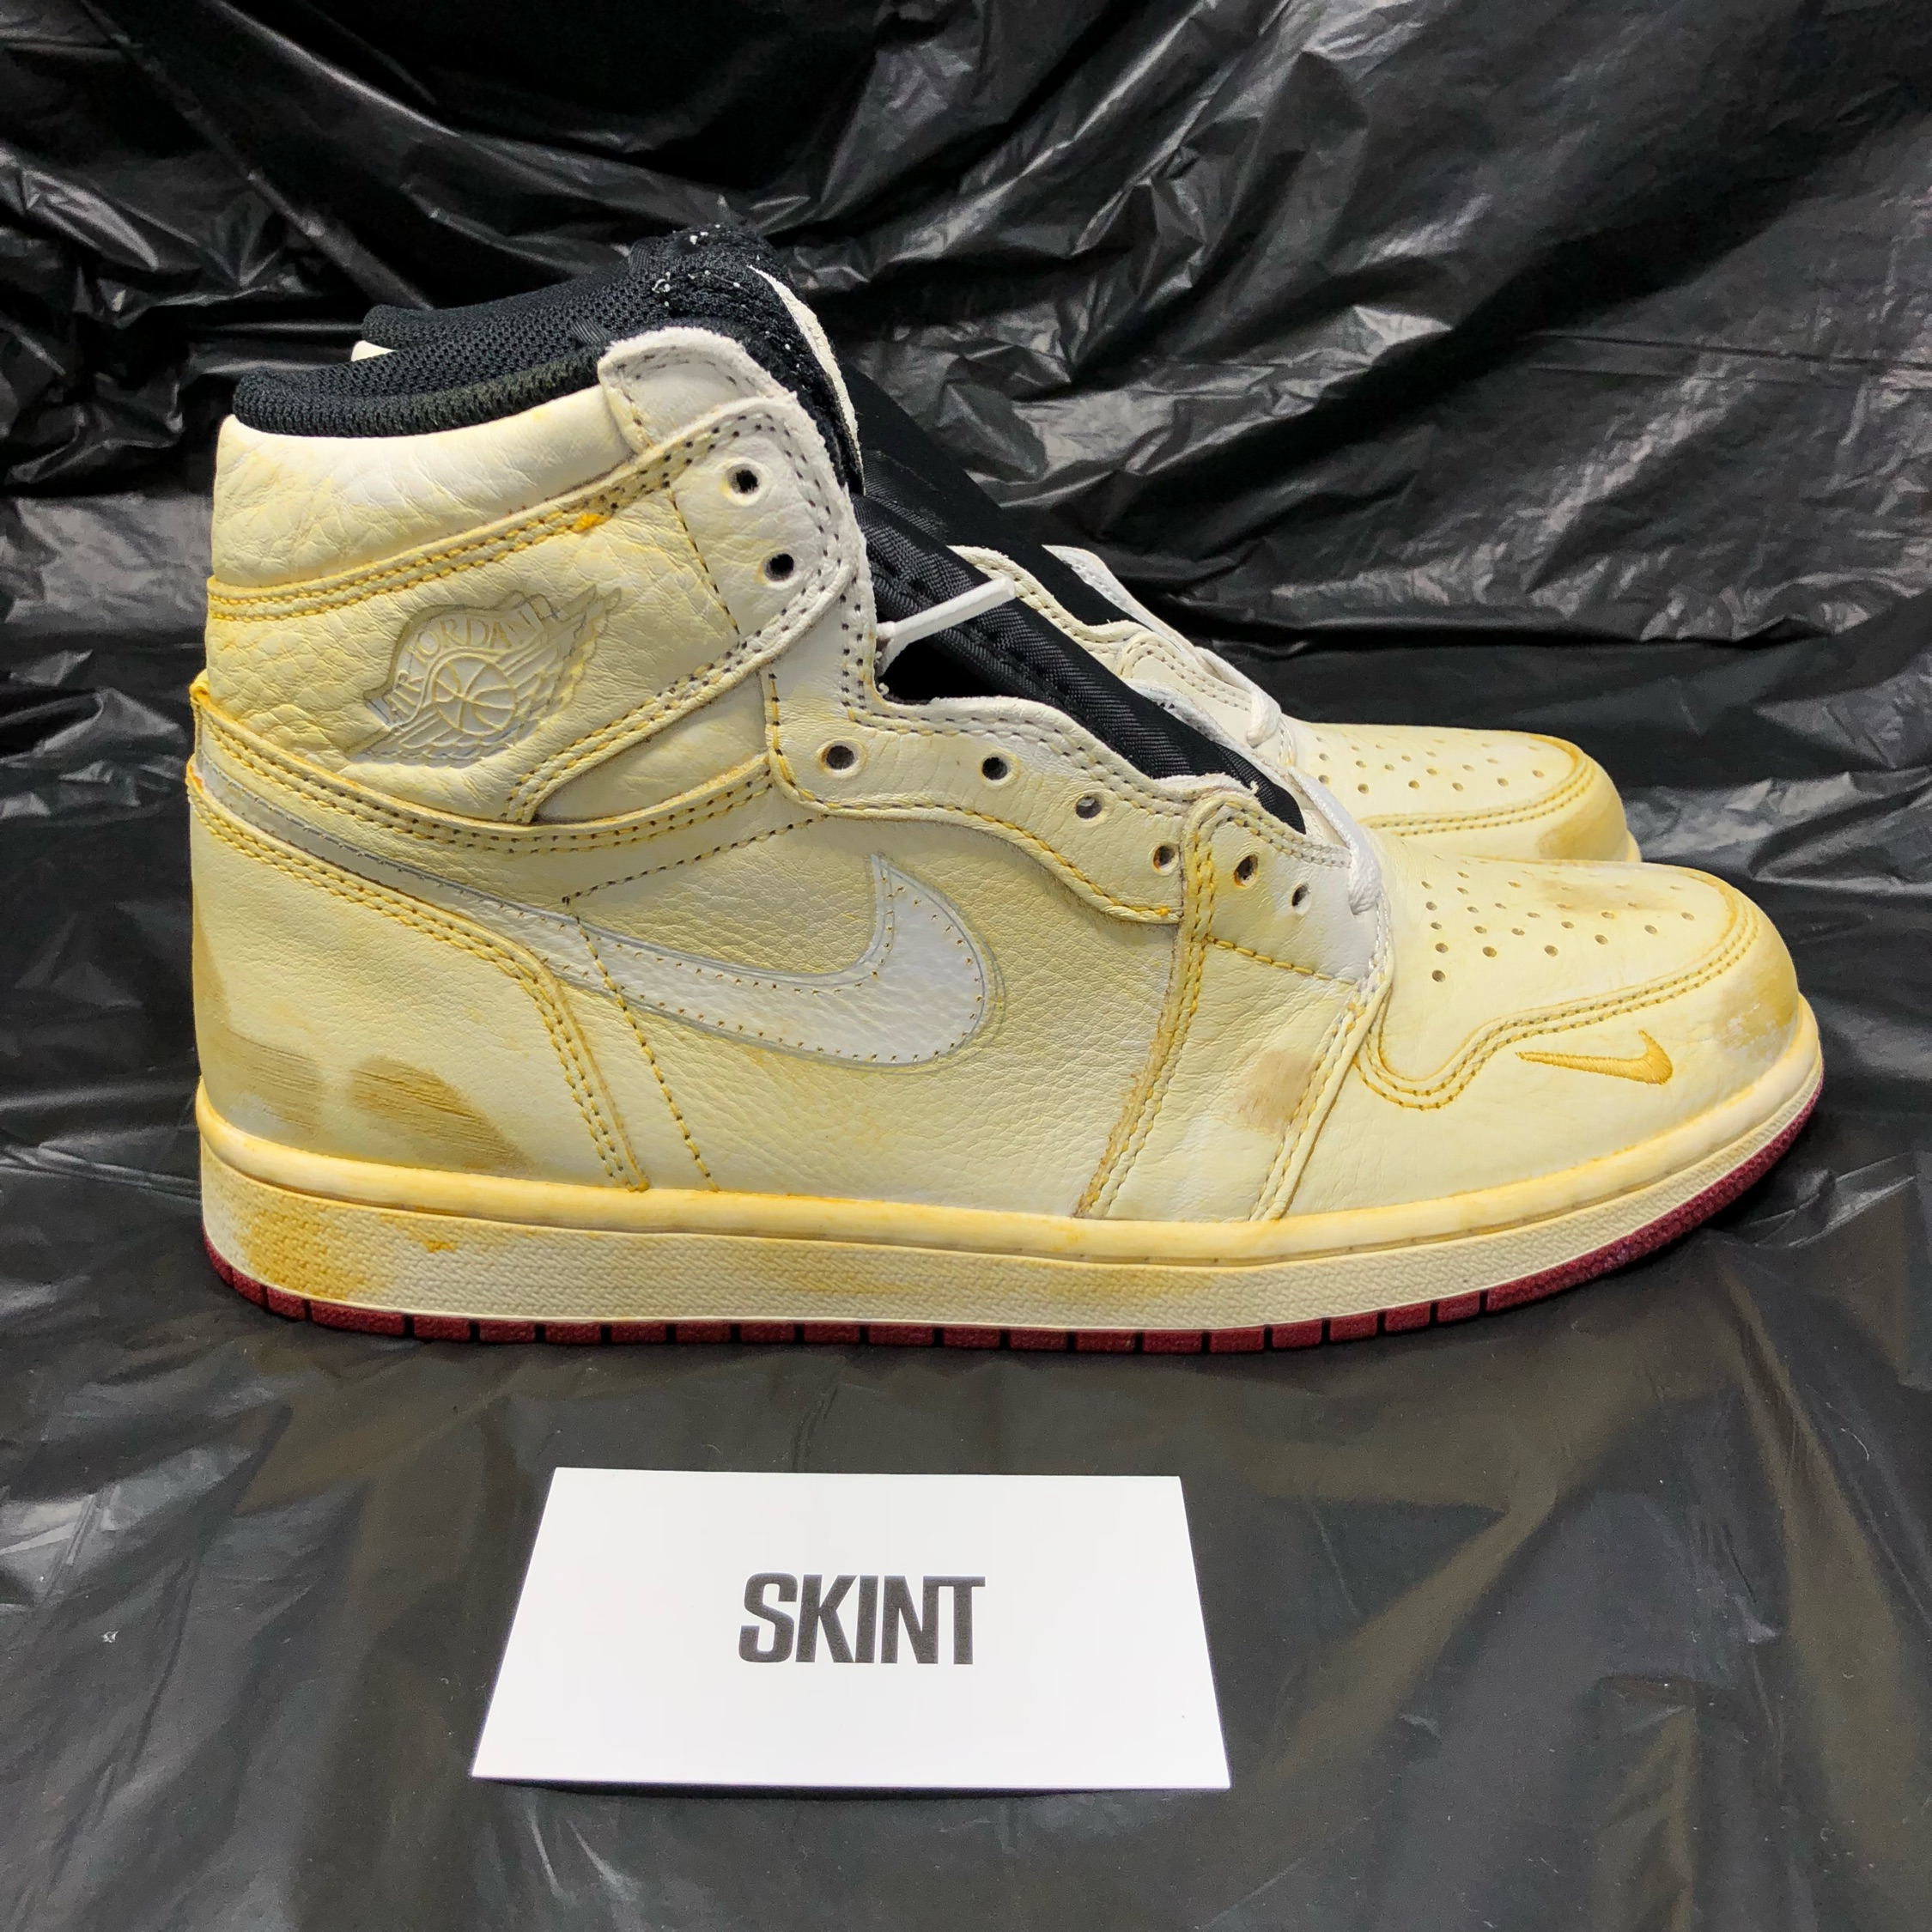 Air Jordan 1 Retro High Nigel Sylvester